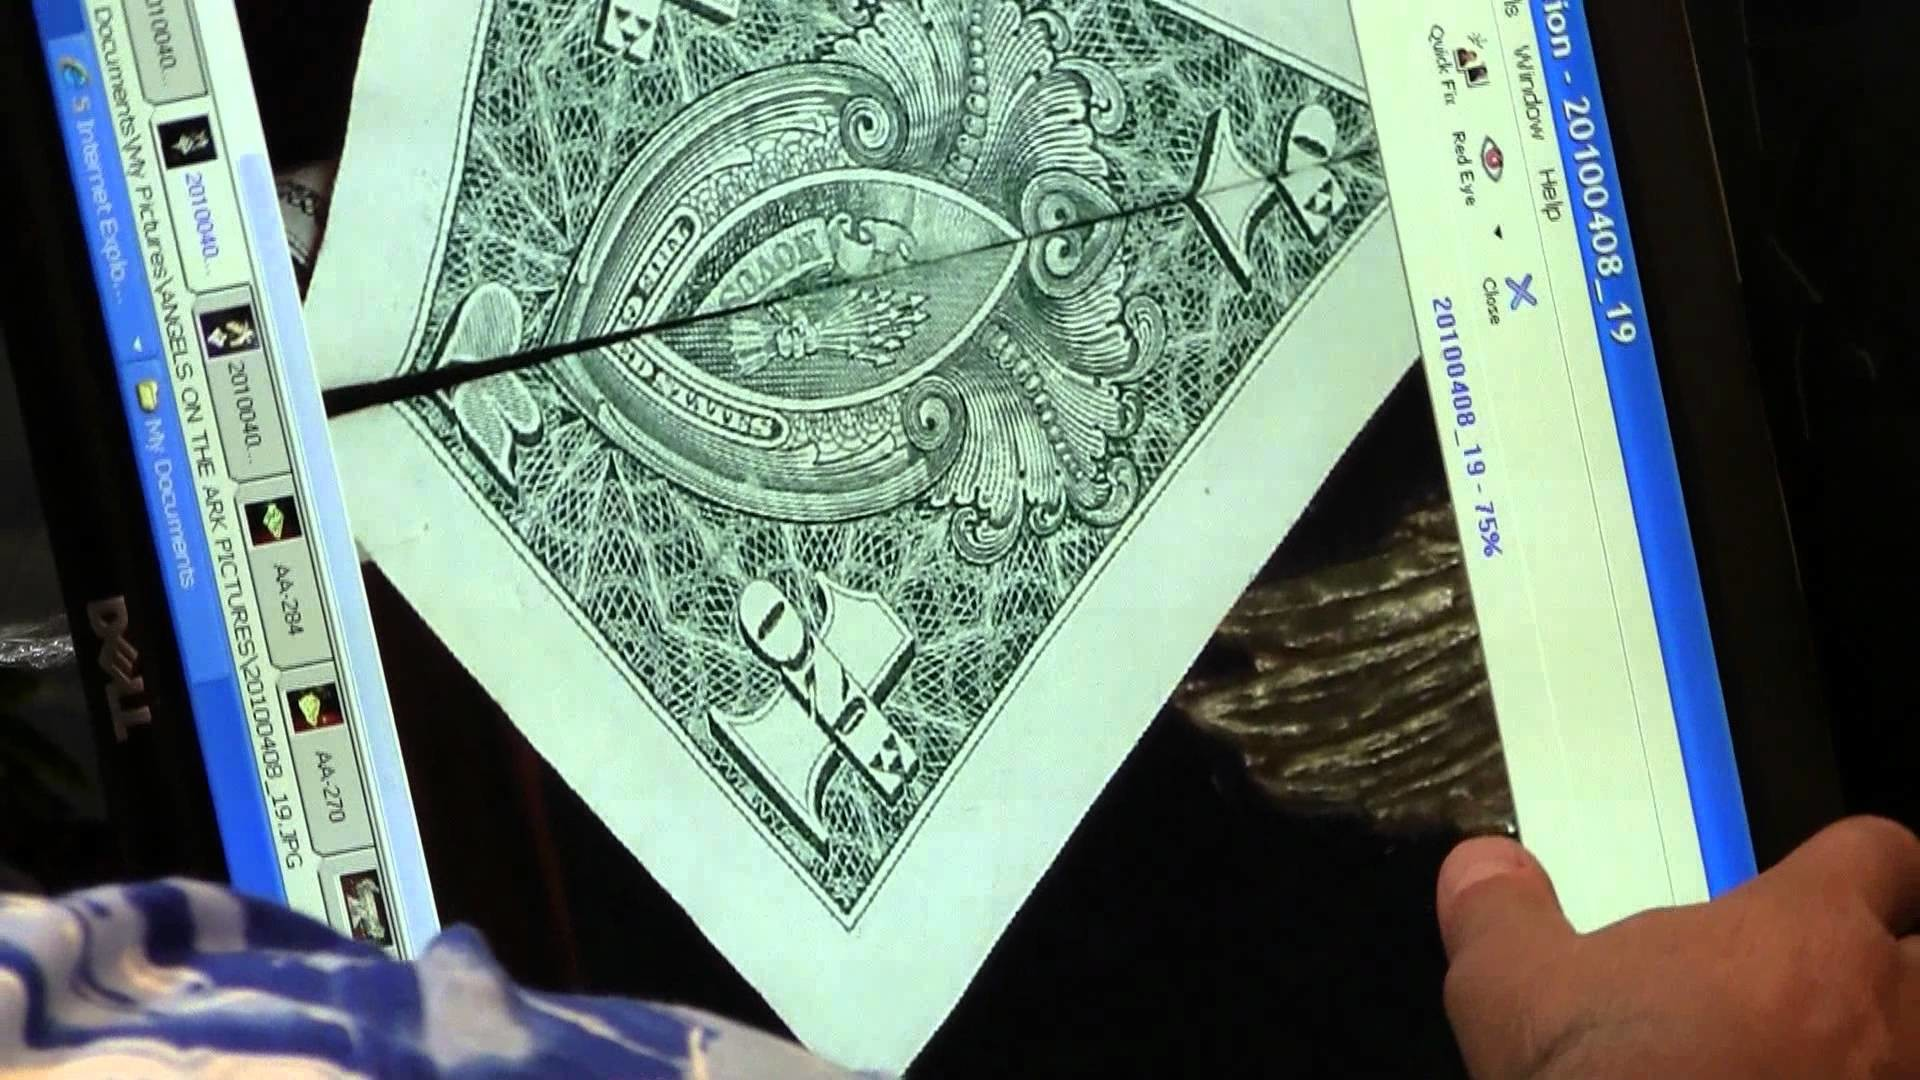 SACRED GEOMETRY & A 300 MILLION YEAR OLD VAMPIRE SQUID ON $1BILL  20110710161402